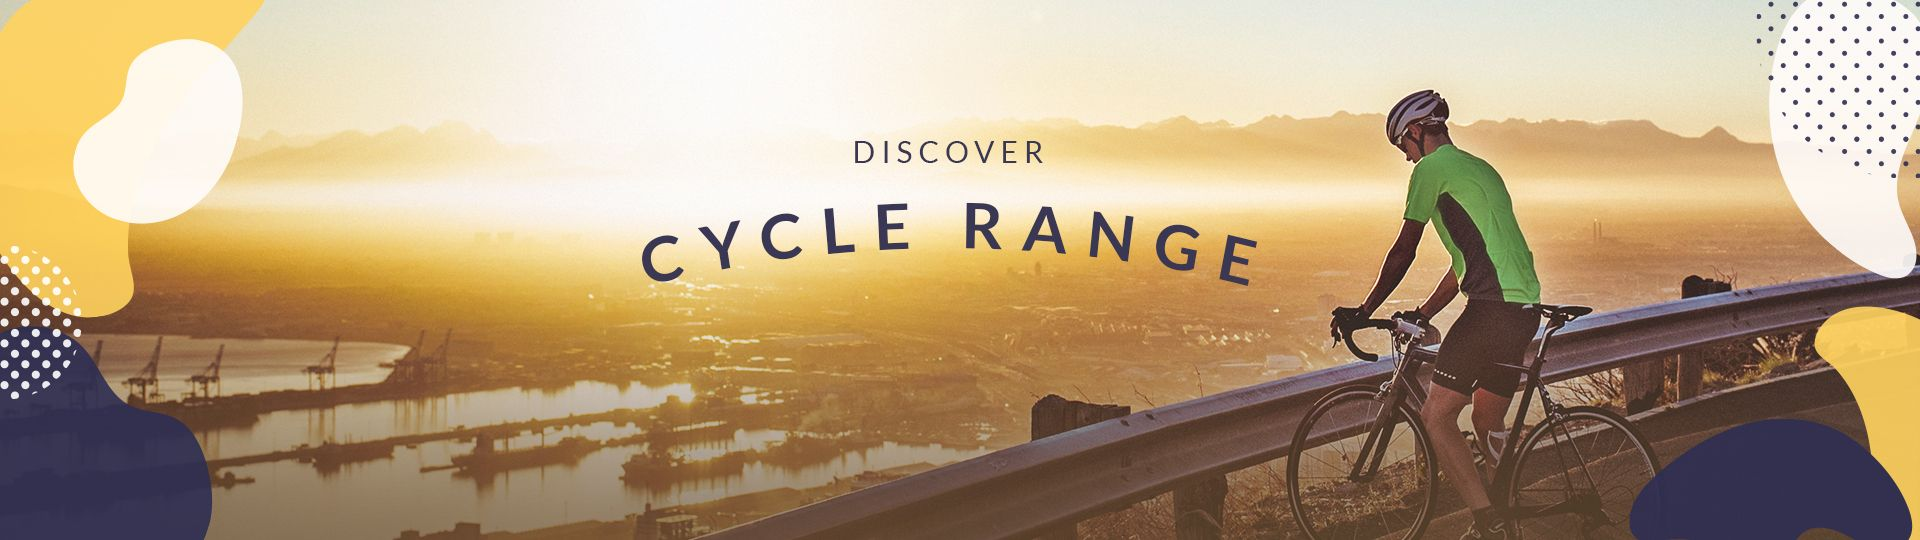 Discover Cycle Range